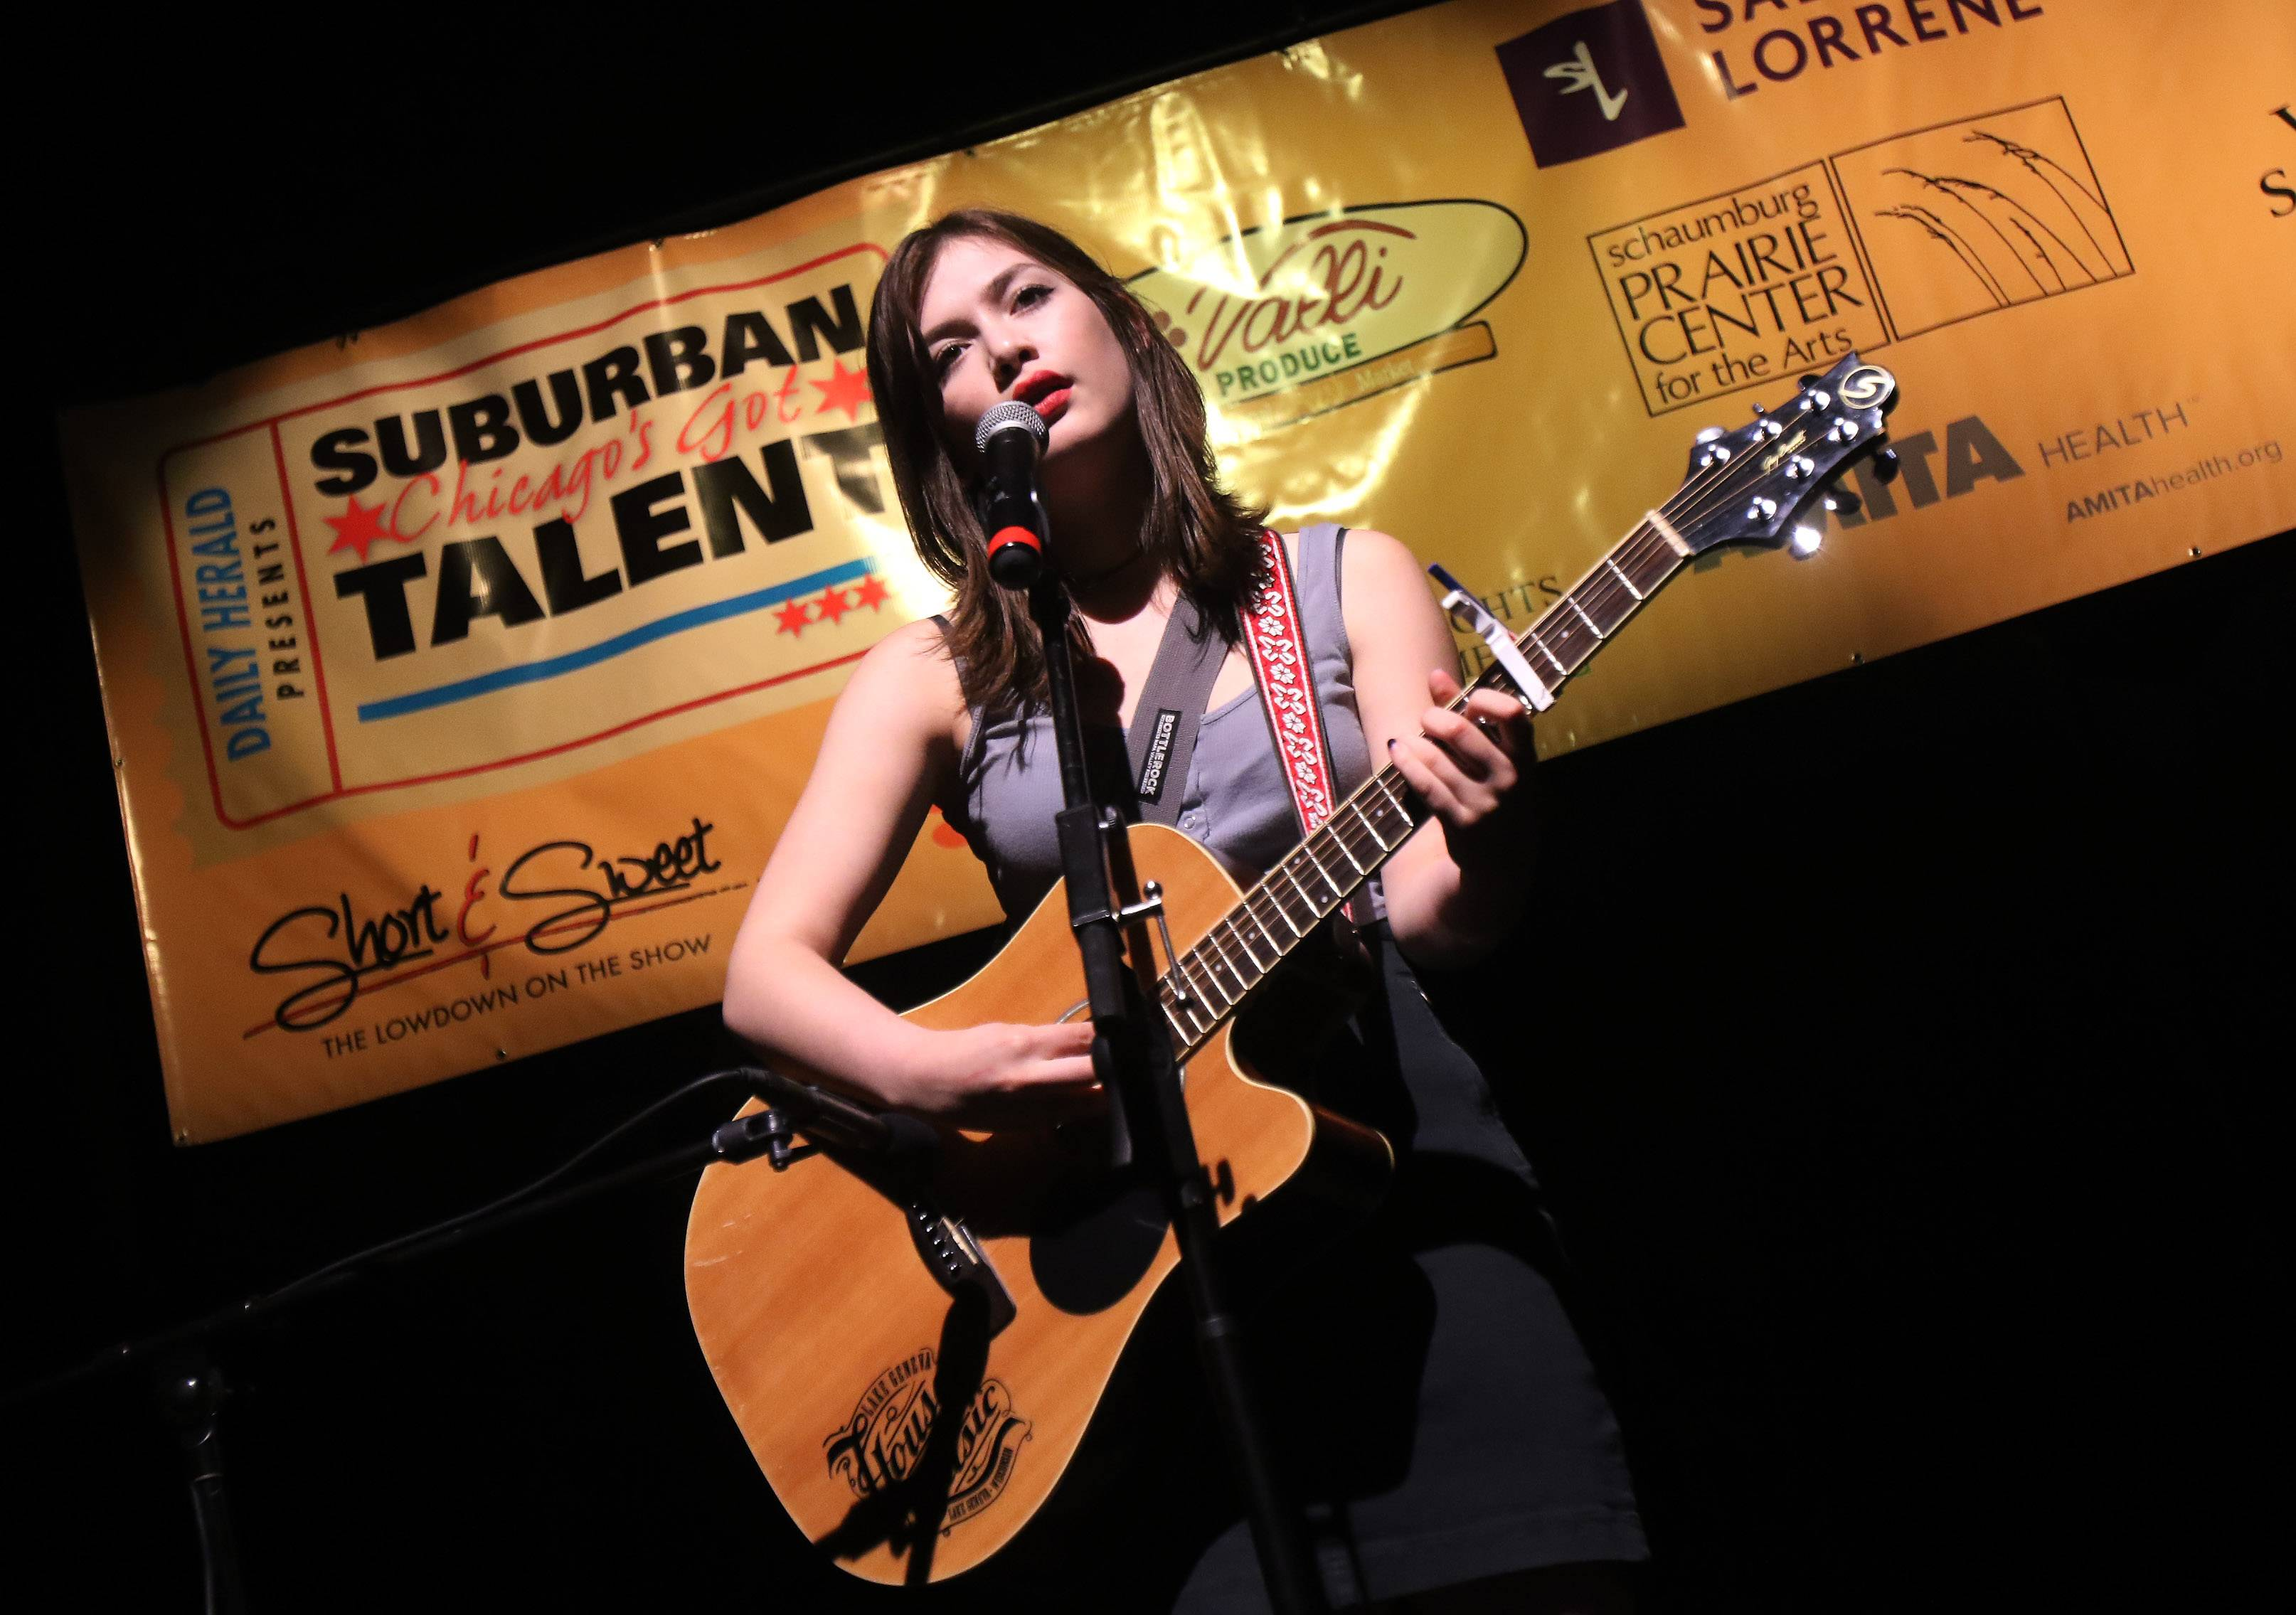 Top 20 take the stage for Suburban Chicago's Got Talent